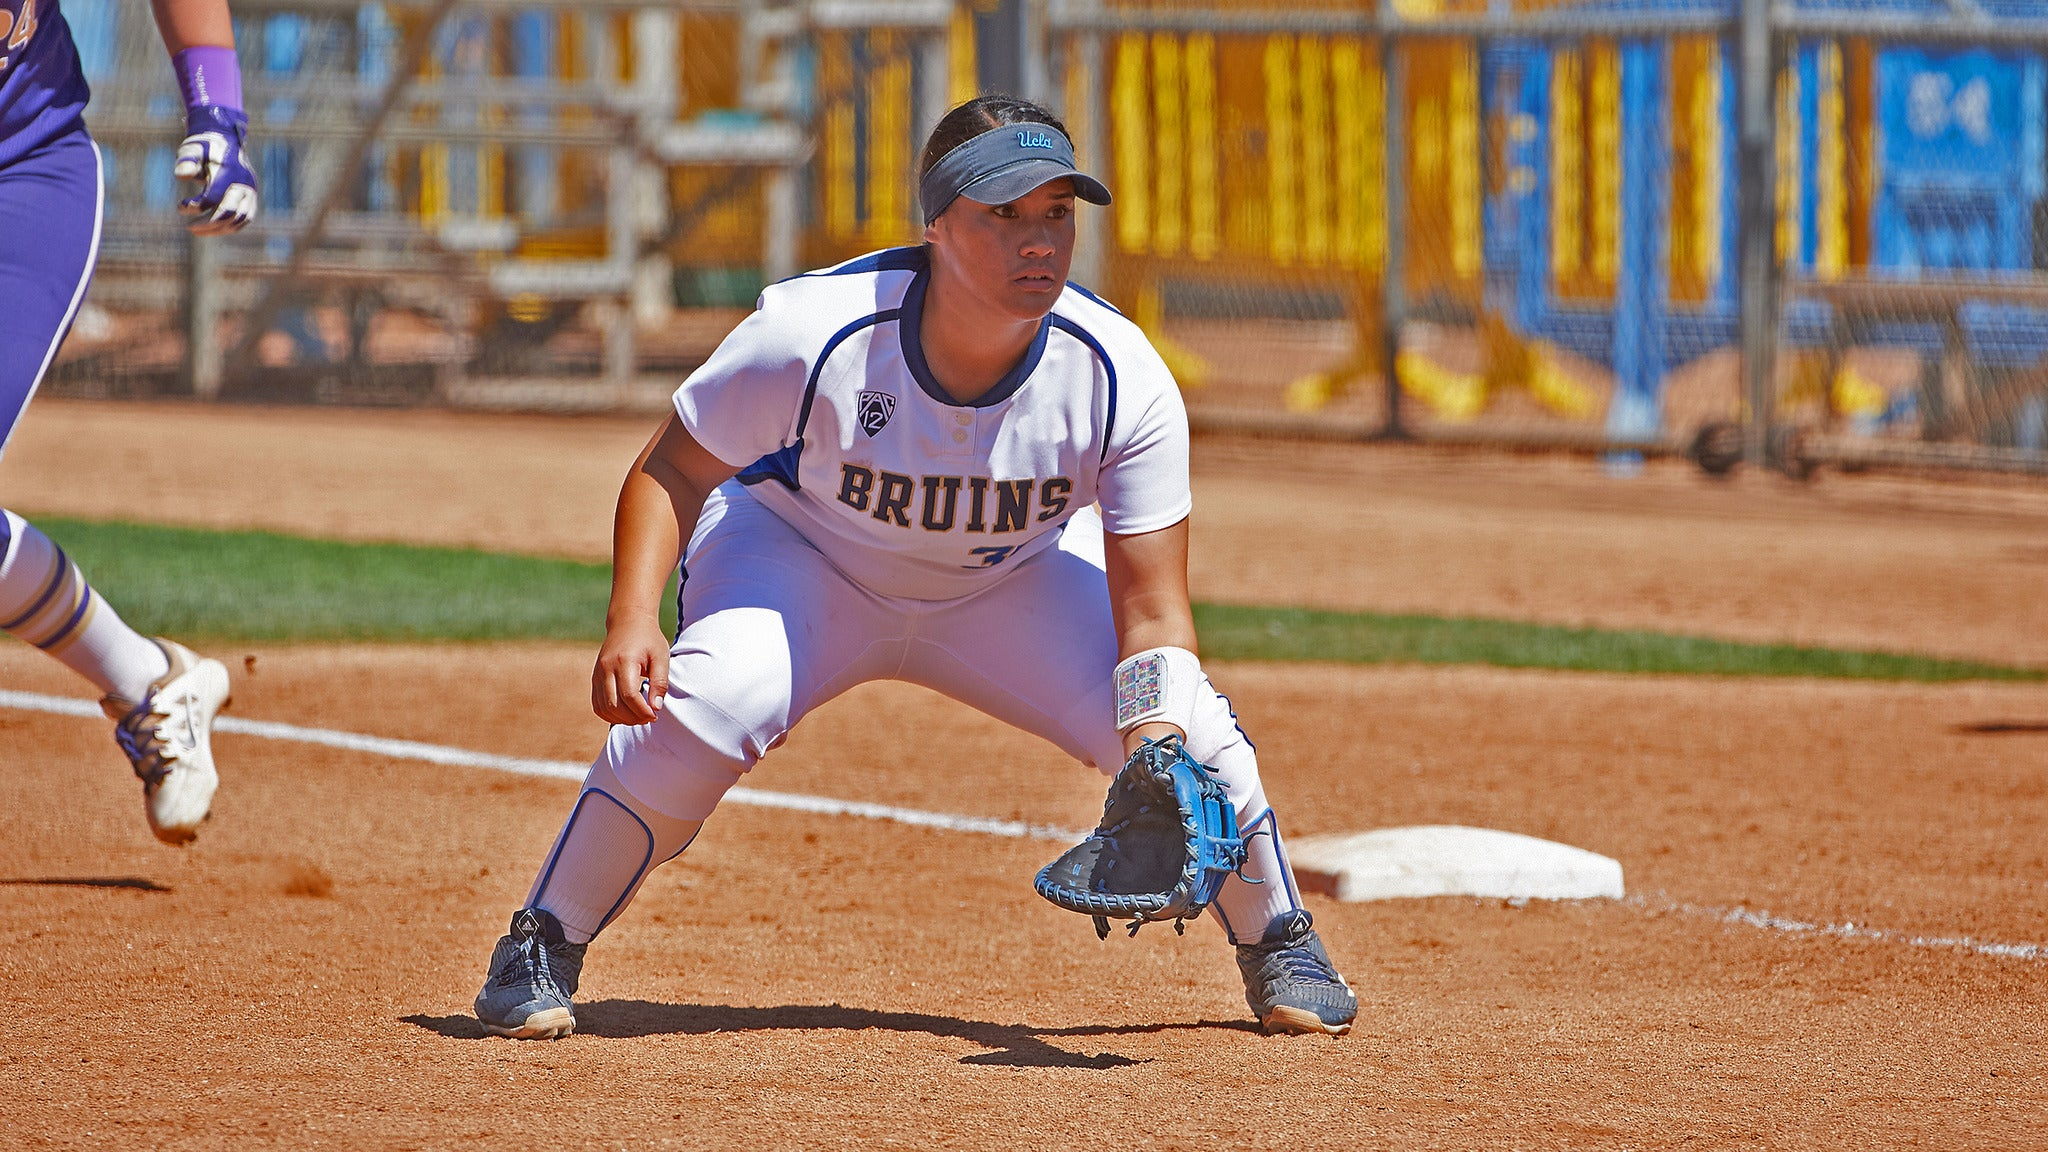 UCLA Bruins Softball v. University of Washtington - Los Angeles, CA 90095